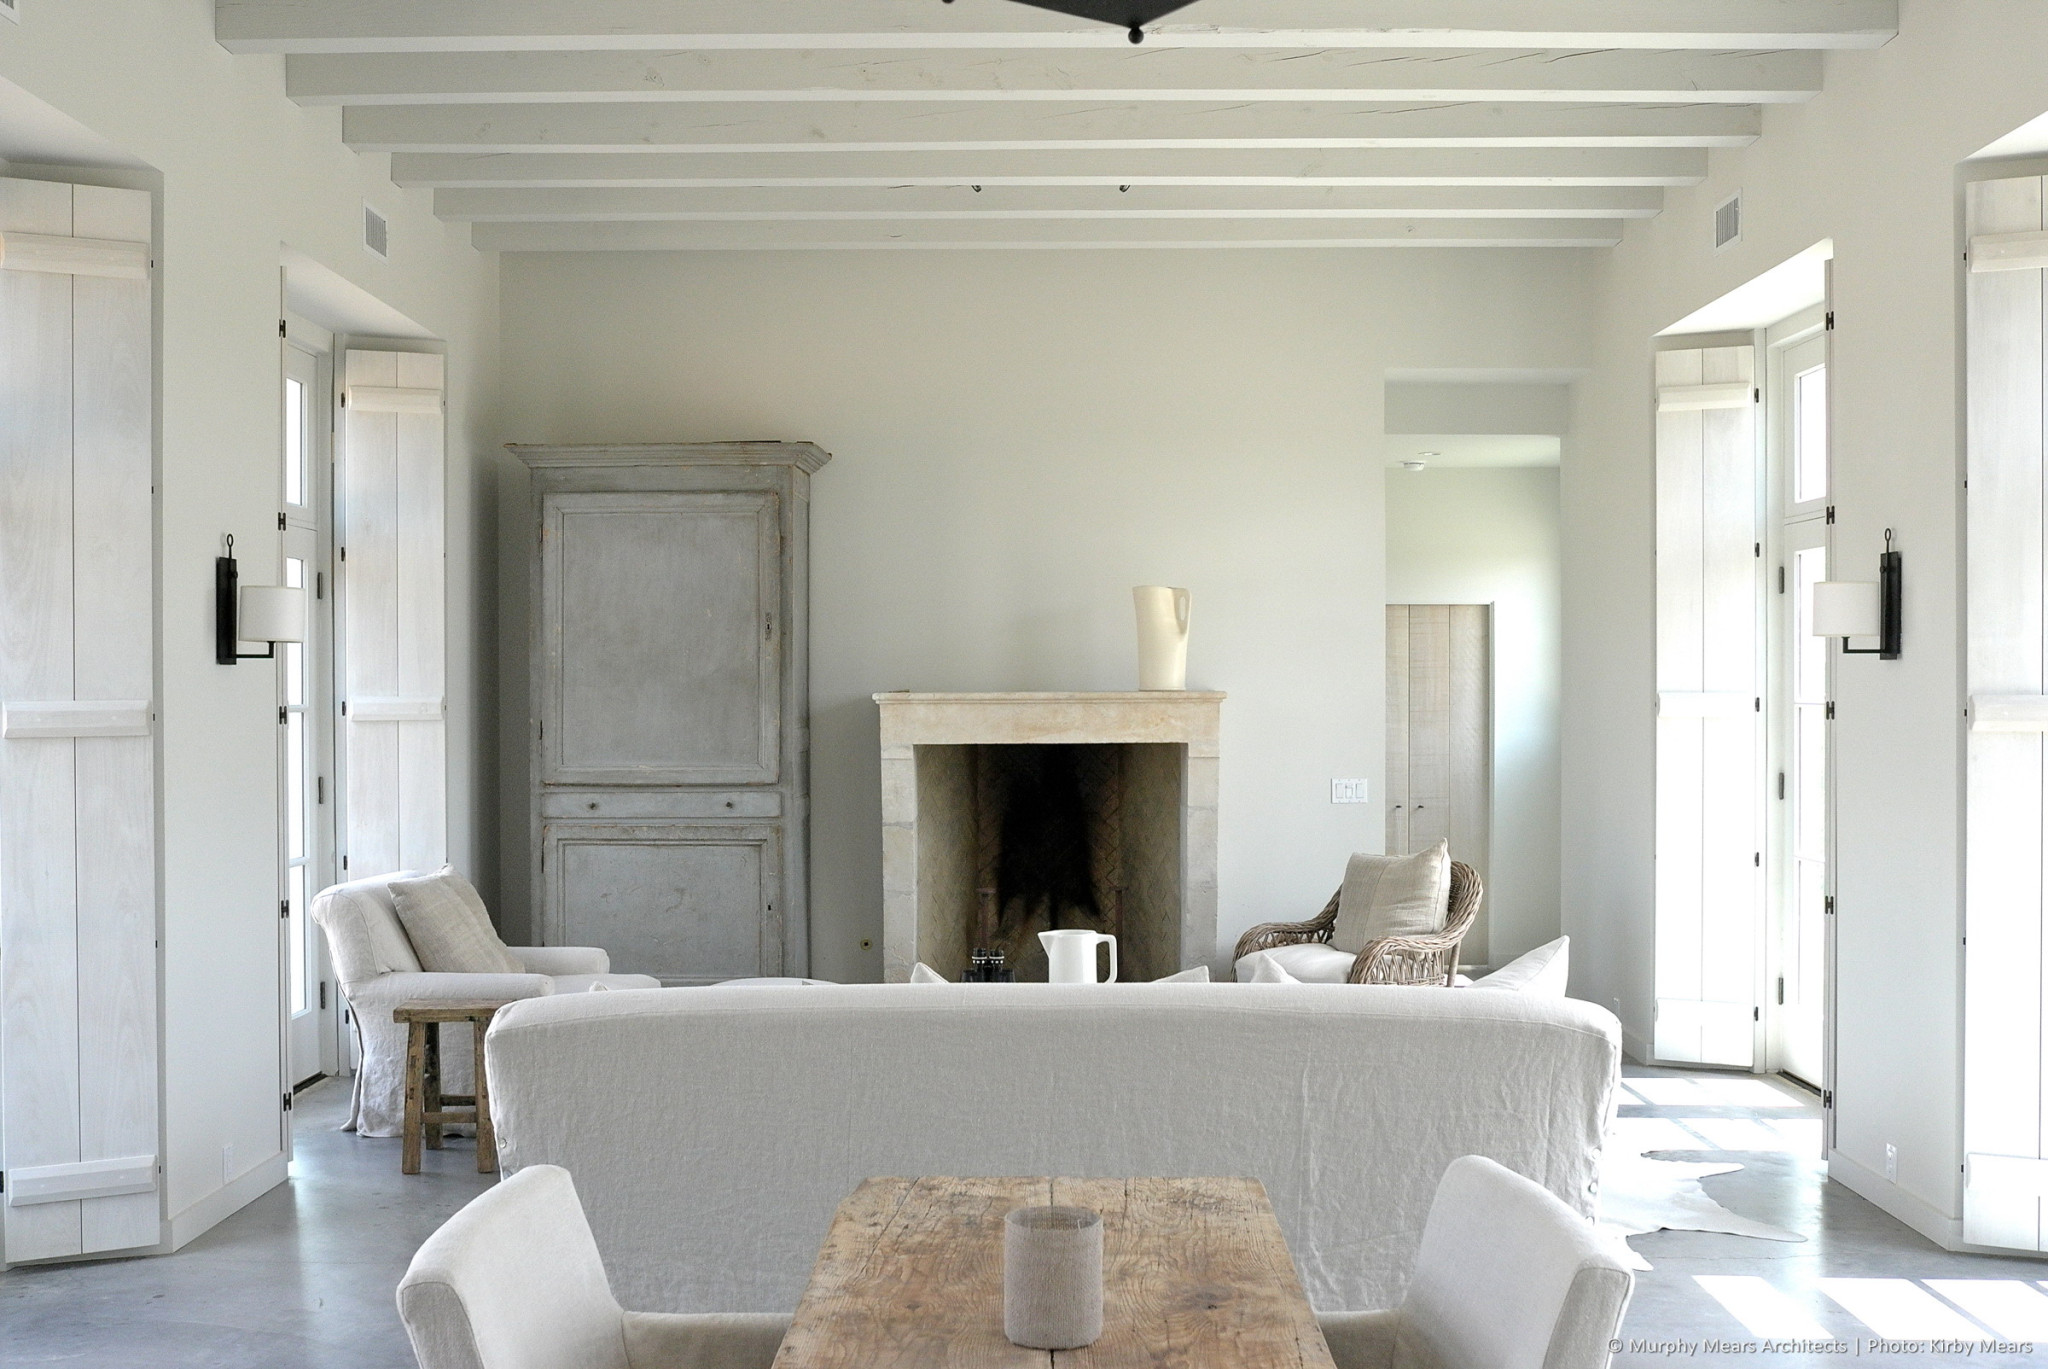 Living Room with white-washed ceiling beams and window shutters.